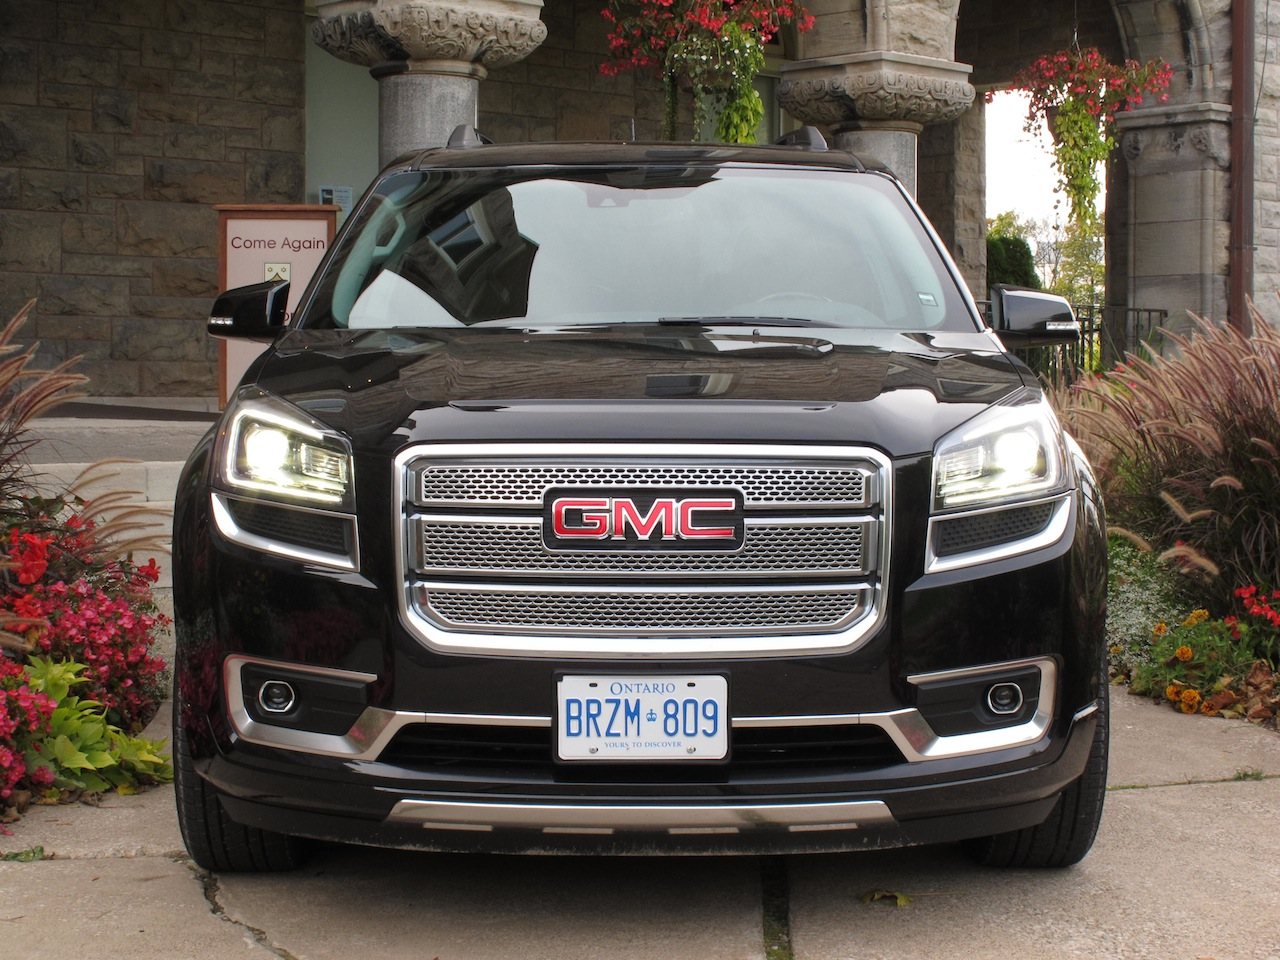 2014 gmc acadia denali cars photos test drives and reviews canadian auto review. Black Bedroom Furniture Sets. Home Design Ideas